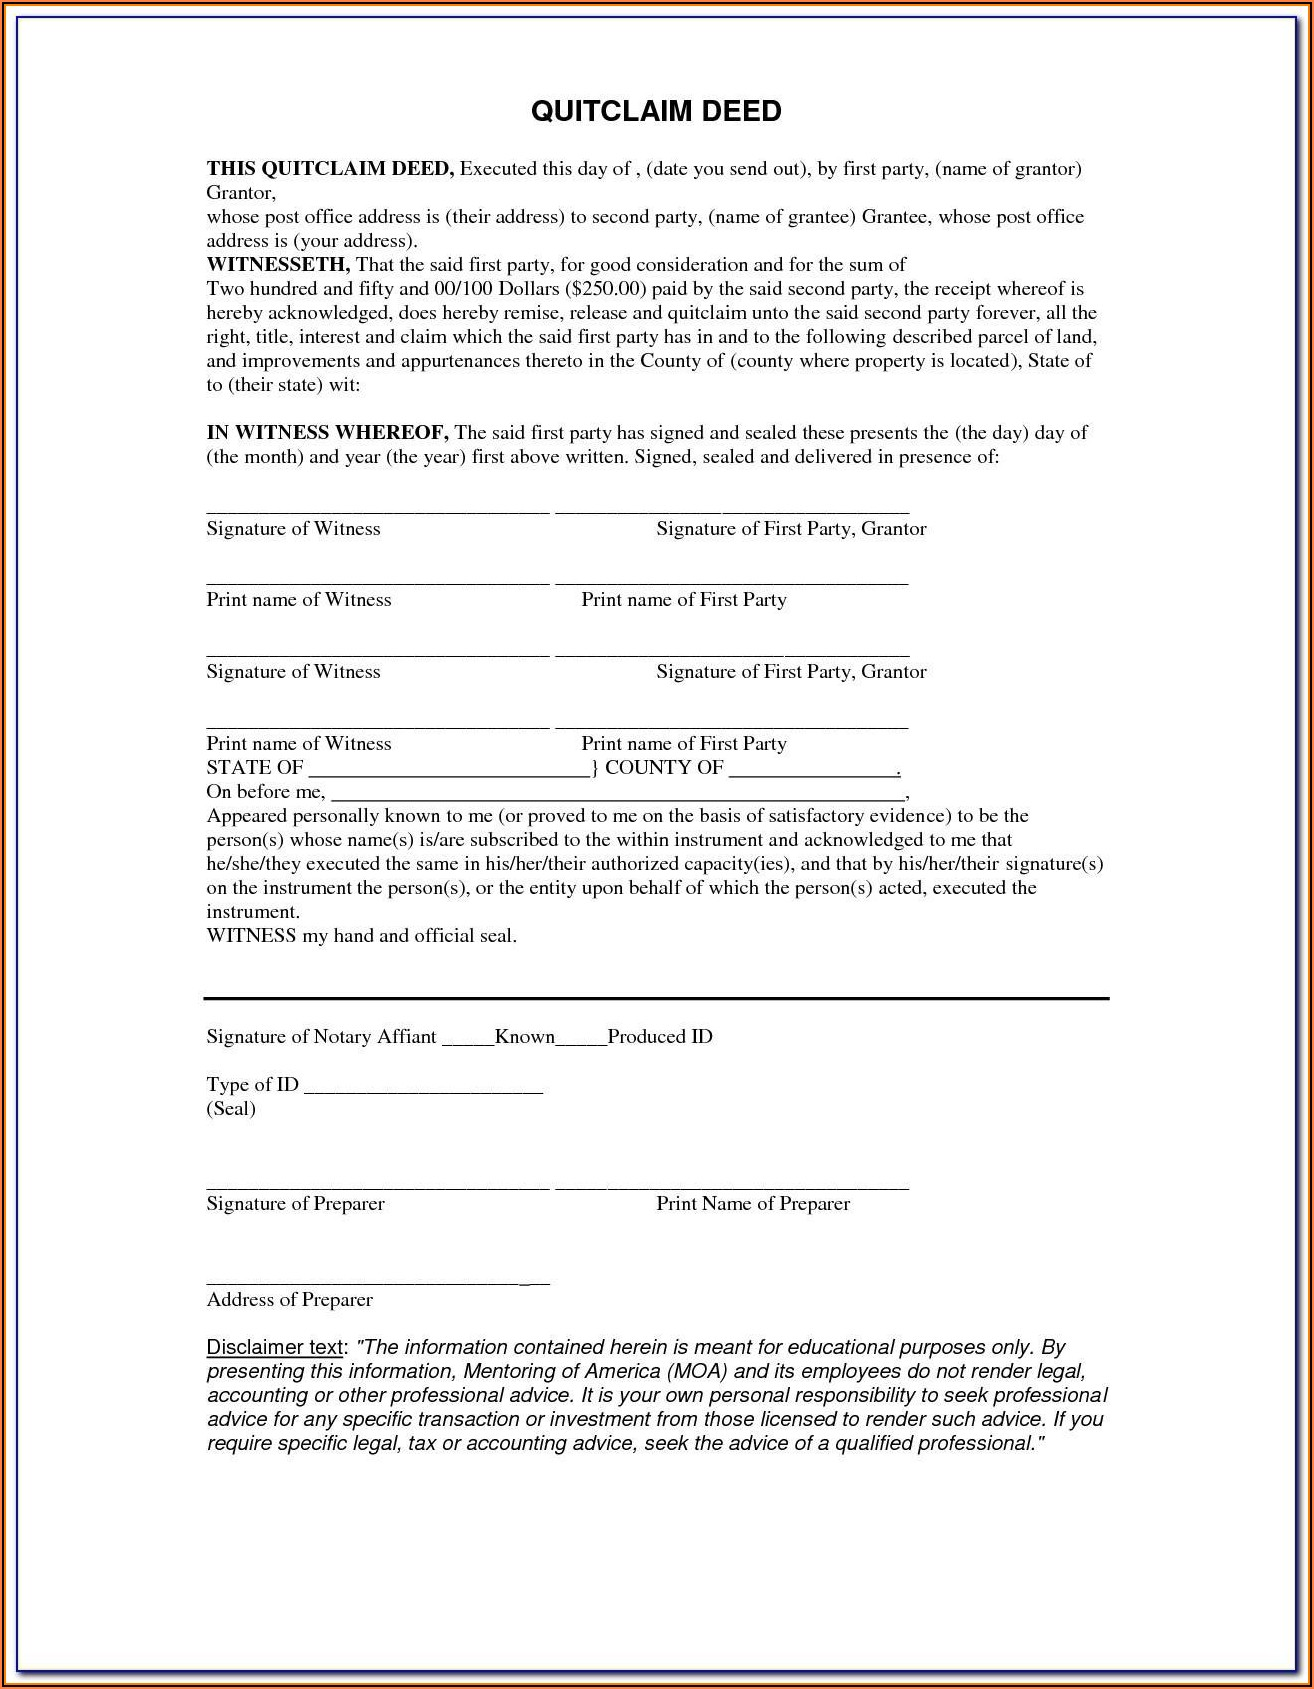 Arkansas Quitclaim Deed Form Pdf